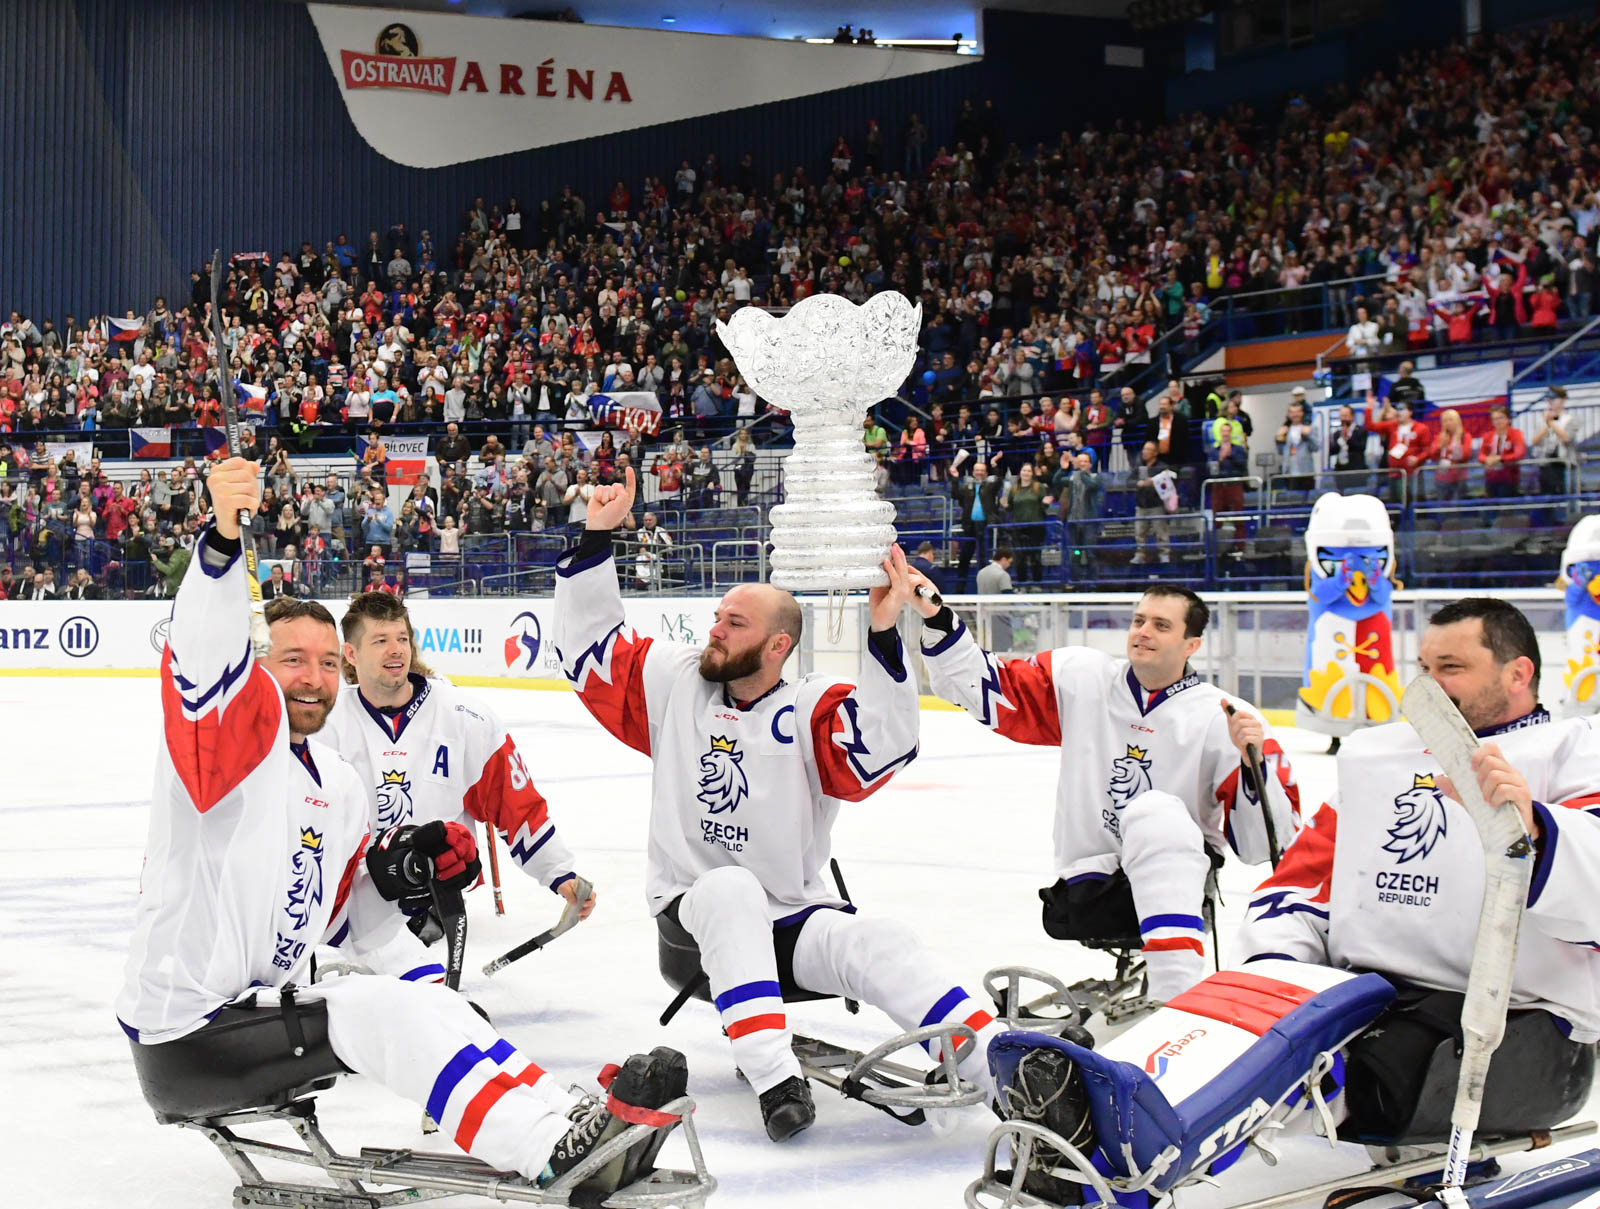 World para ice hockey championship bronze medal game between Korea and Czech Republic in Ostrava, Czech Republic, 4th of May 2019.